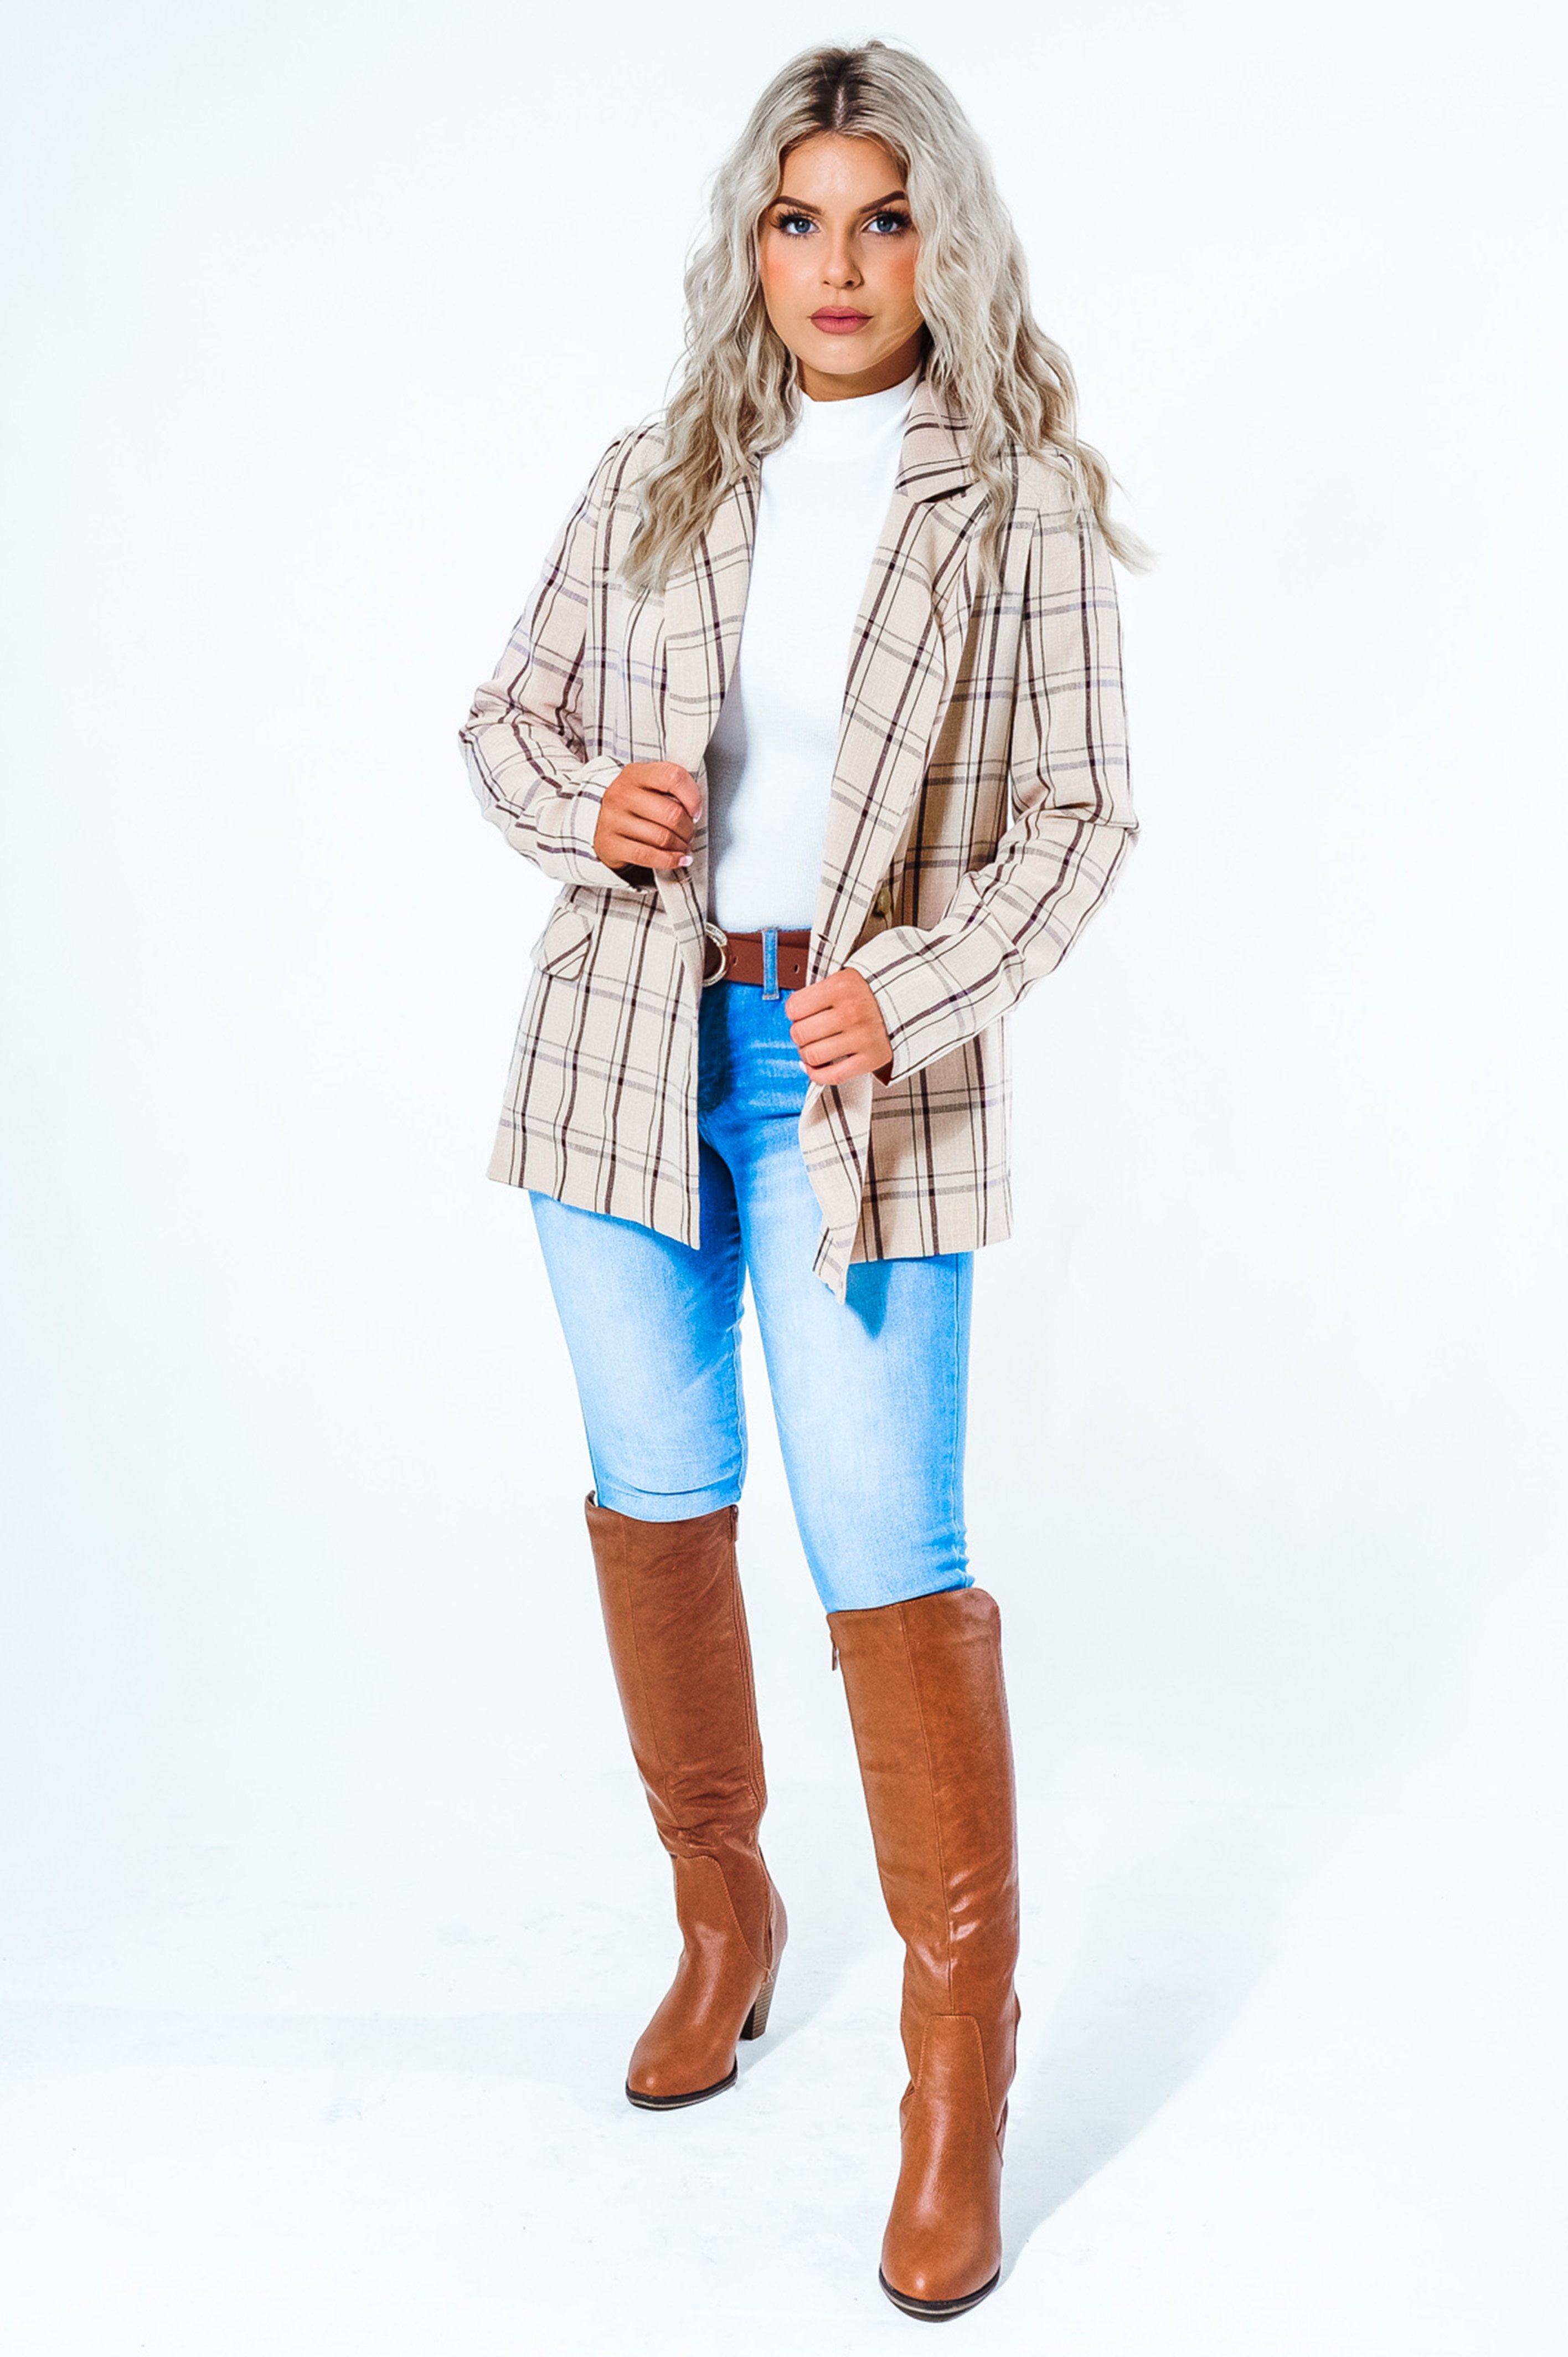 Image of She Means Business Blazer: Multi